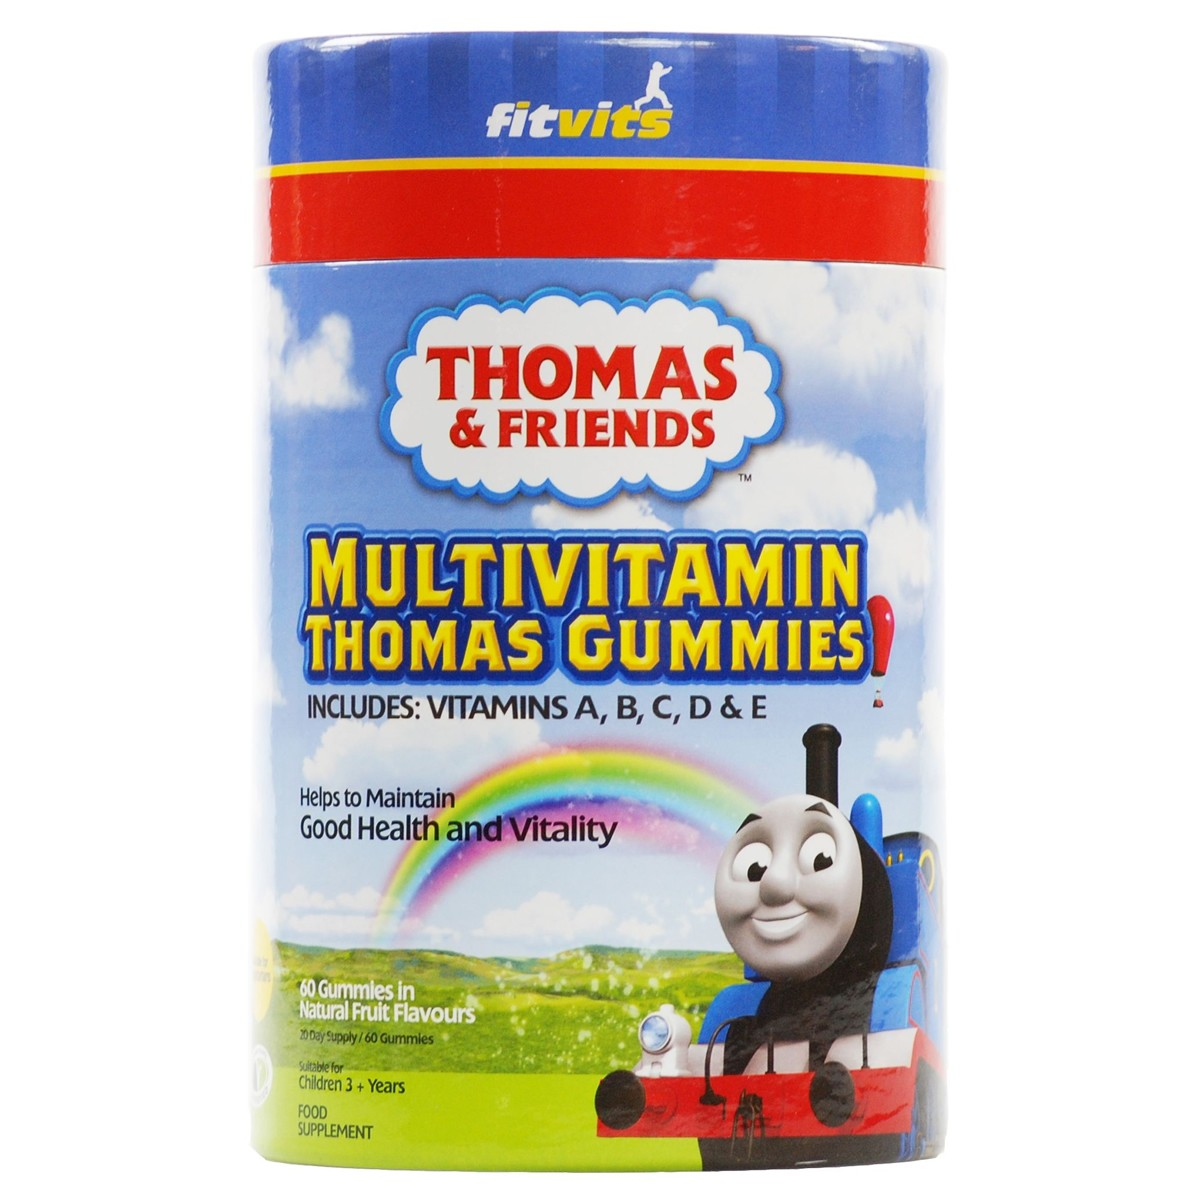 FitVits Thomas & Friends Multivitamin Thomas Gummies